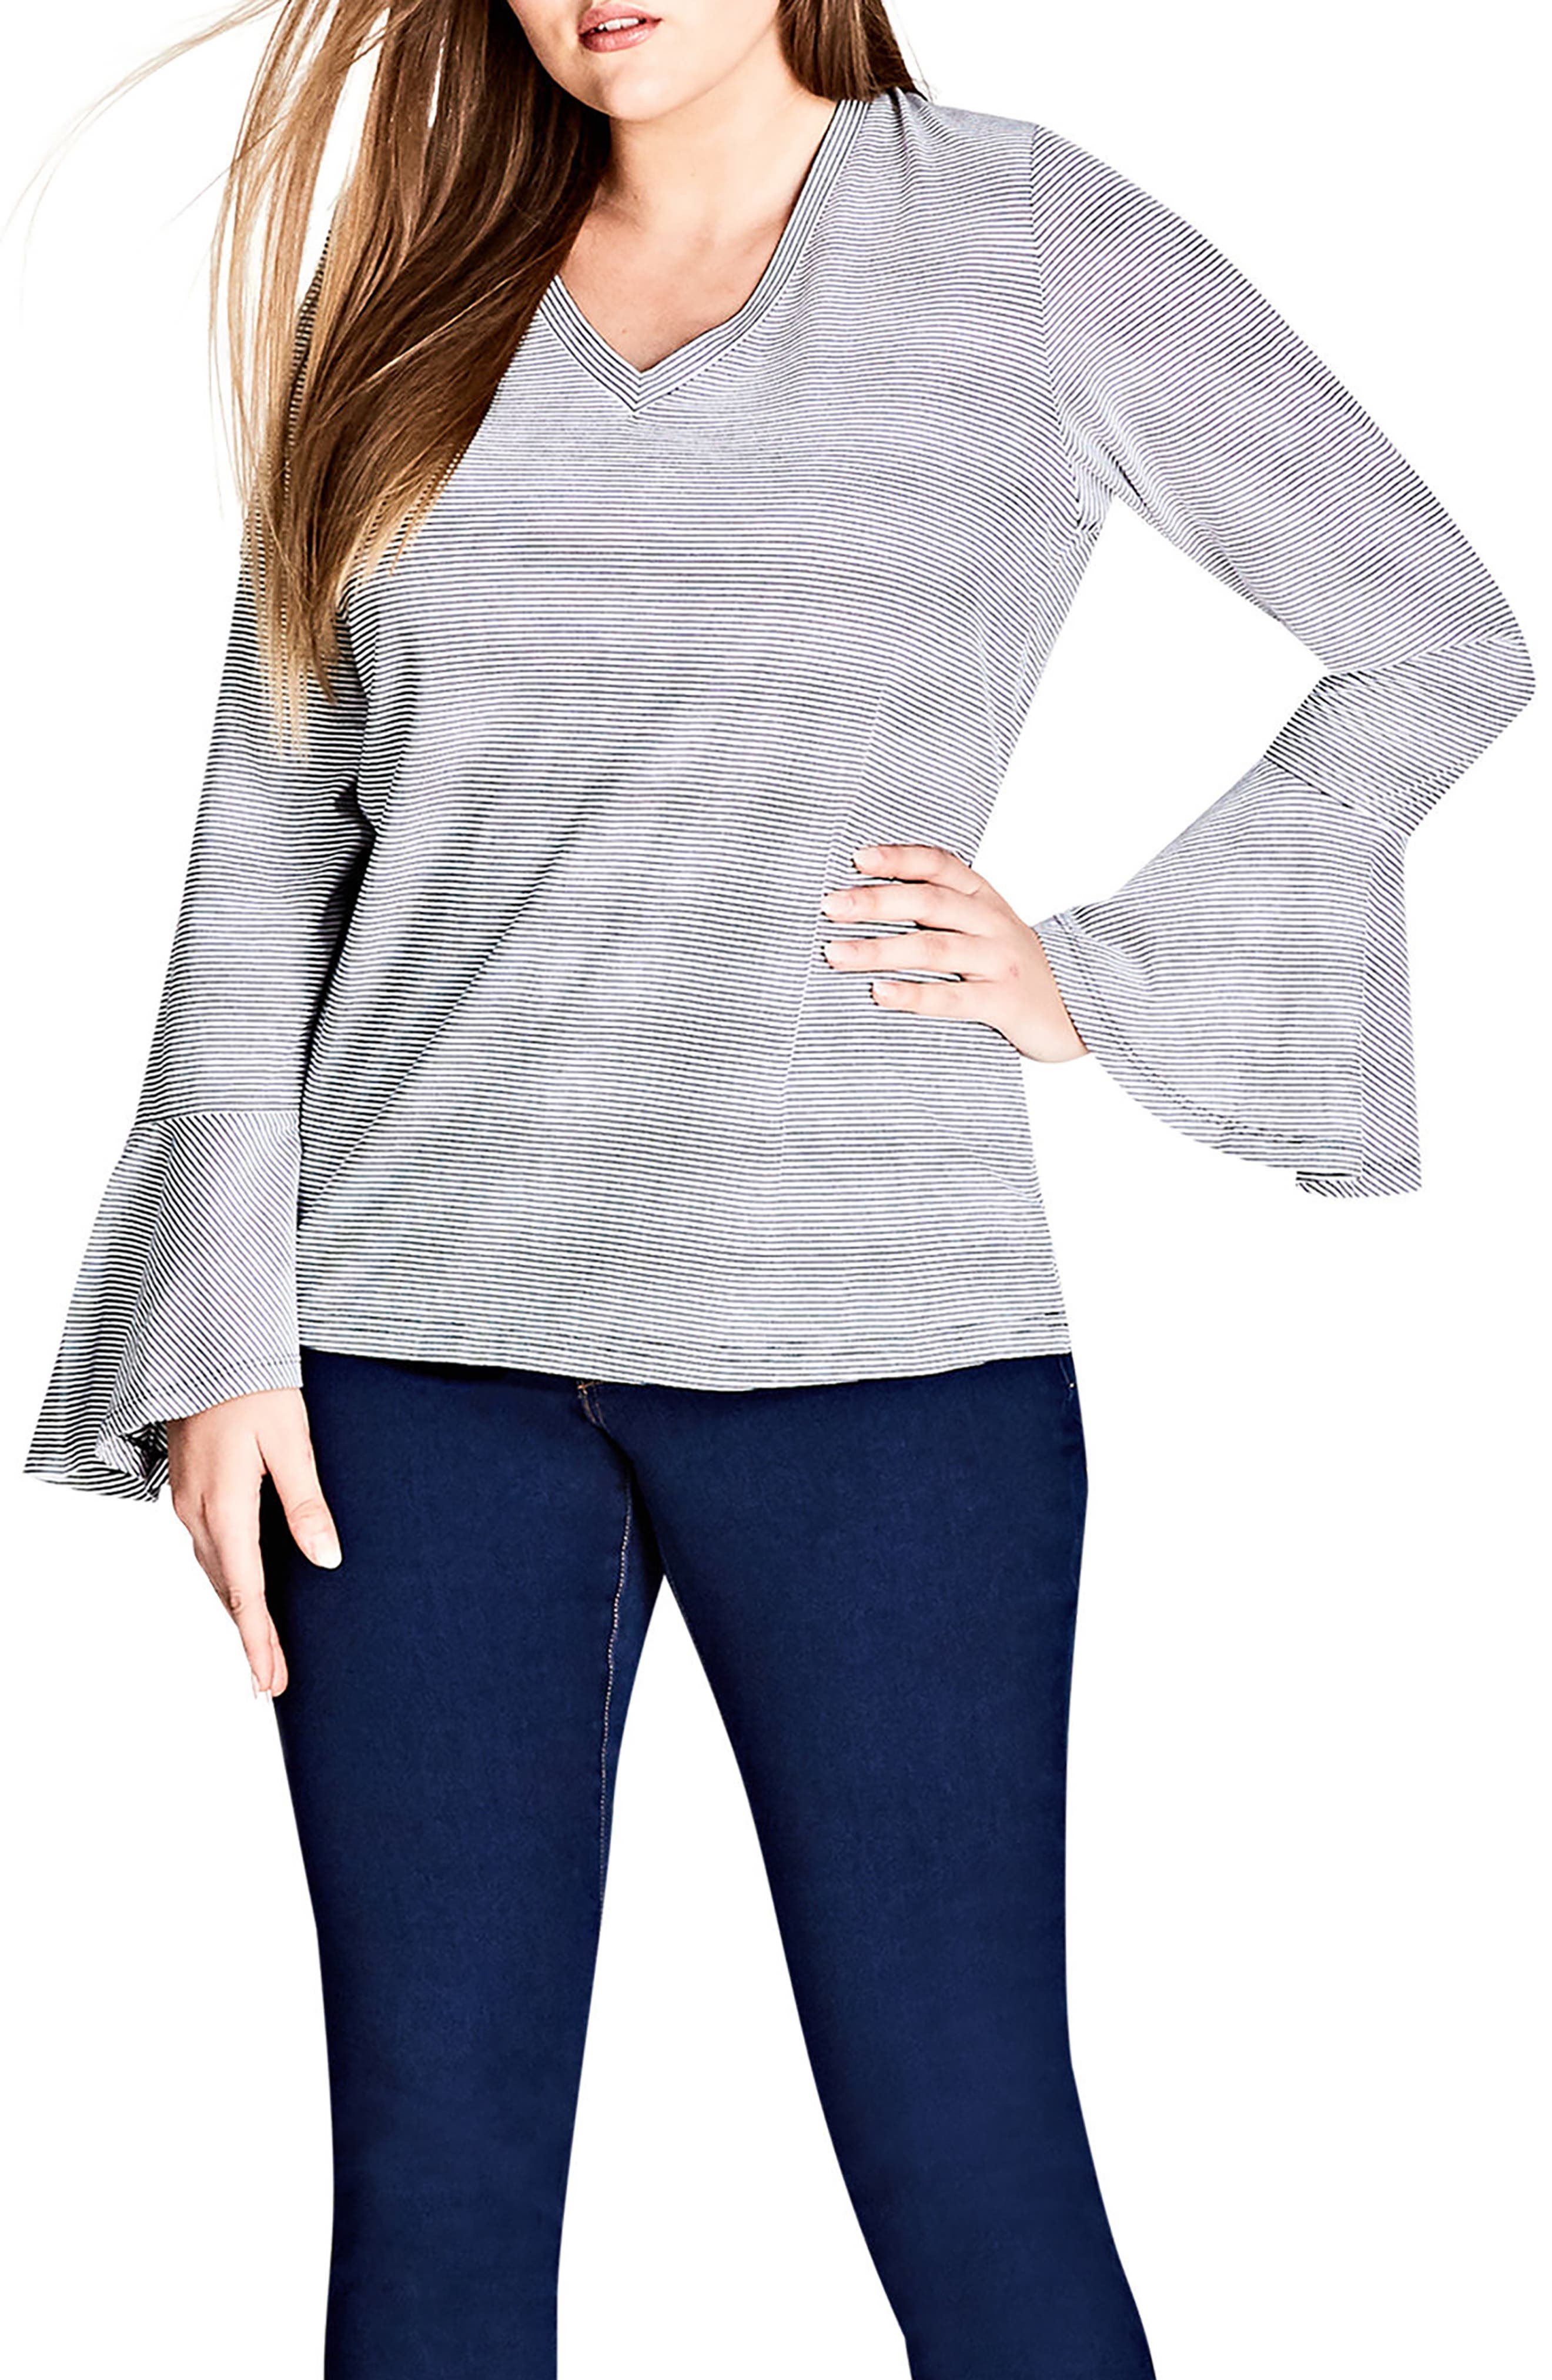 Main Image - City Chic Bell Sleeve Stripe V-Neck Top (Plus Size)